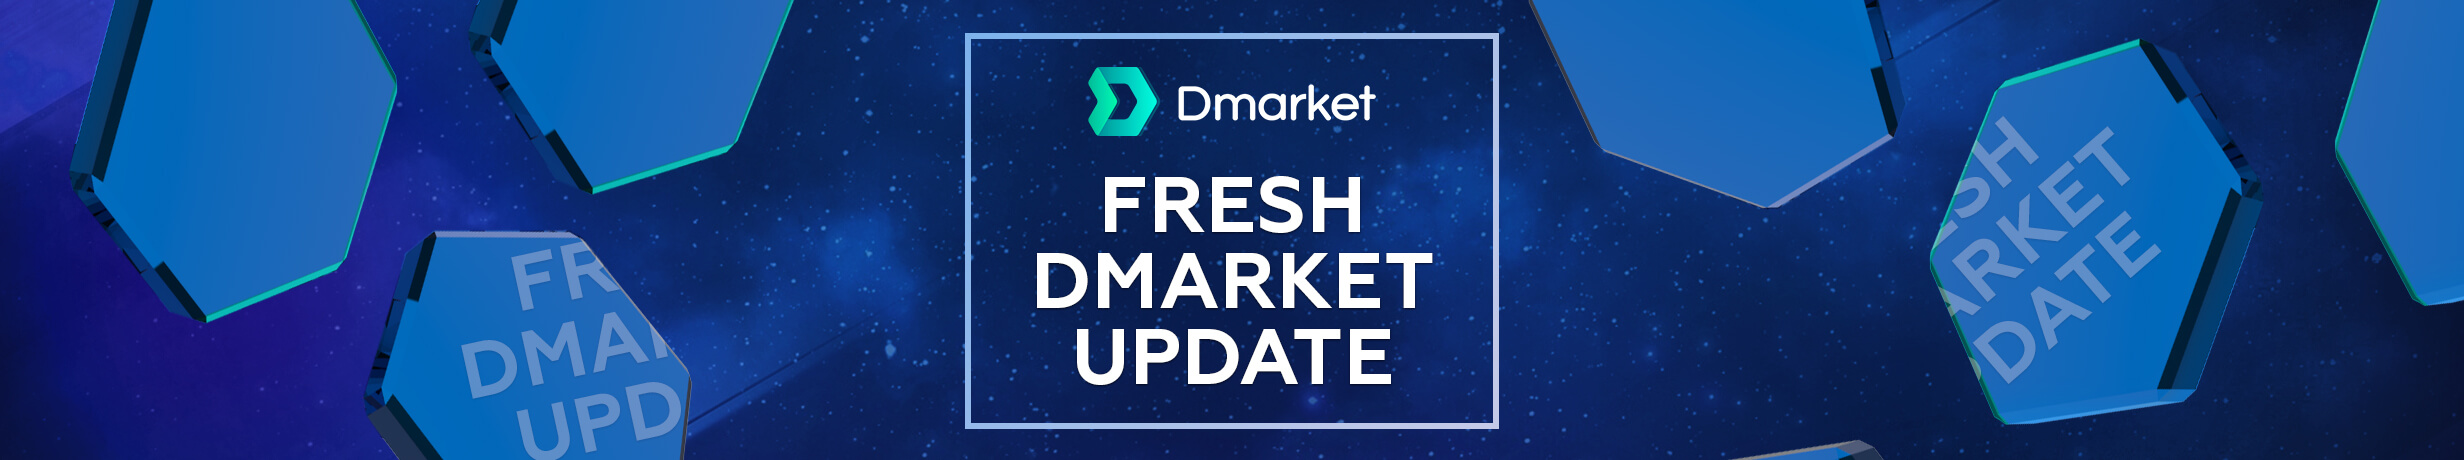 Summer Sizzlers: DMarket launches great new features